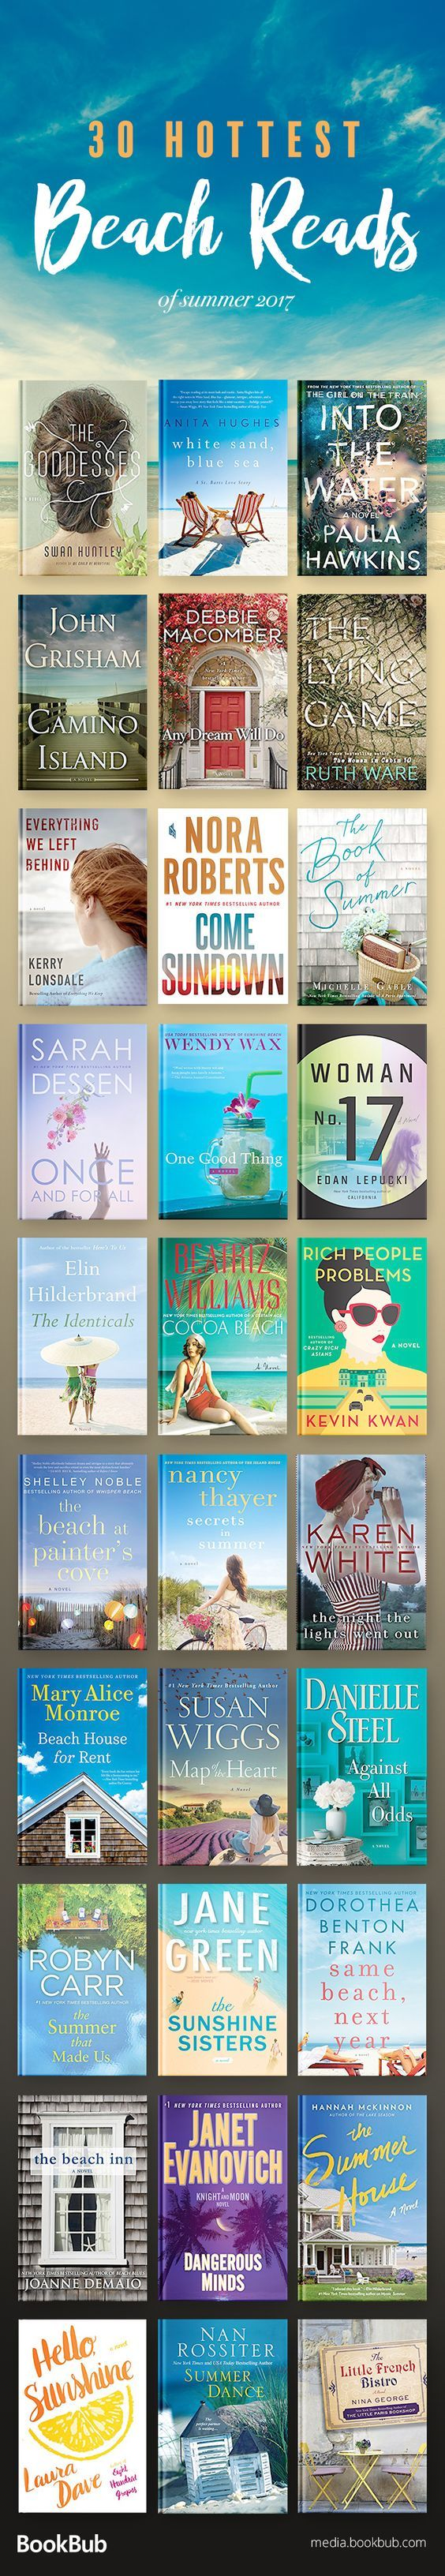 30 great beach reads to add to your summer reading list. This book list includes a lot of great genres, including thrillers, romance books, and more.